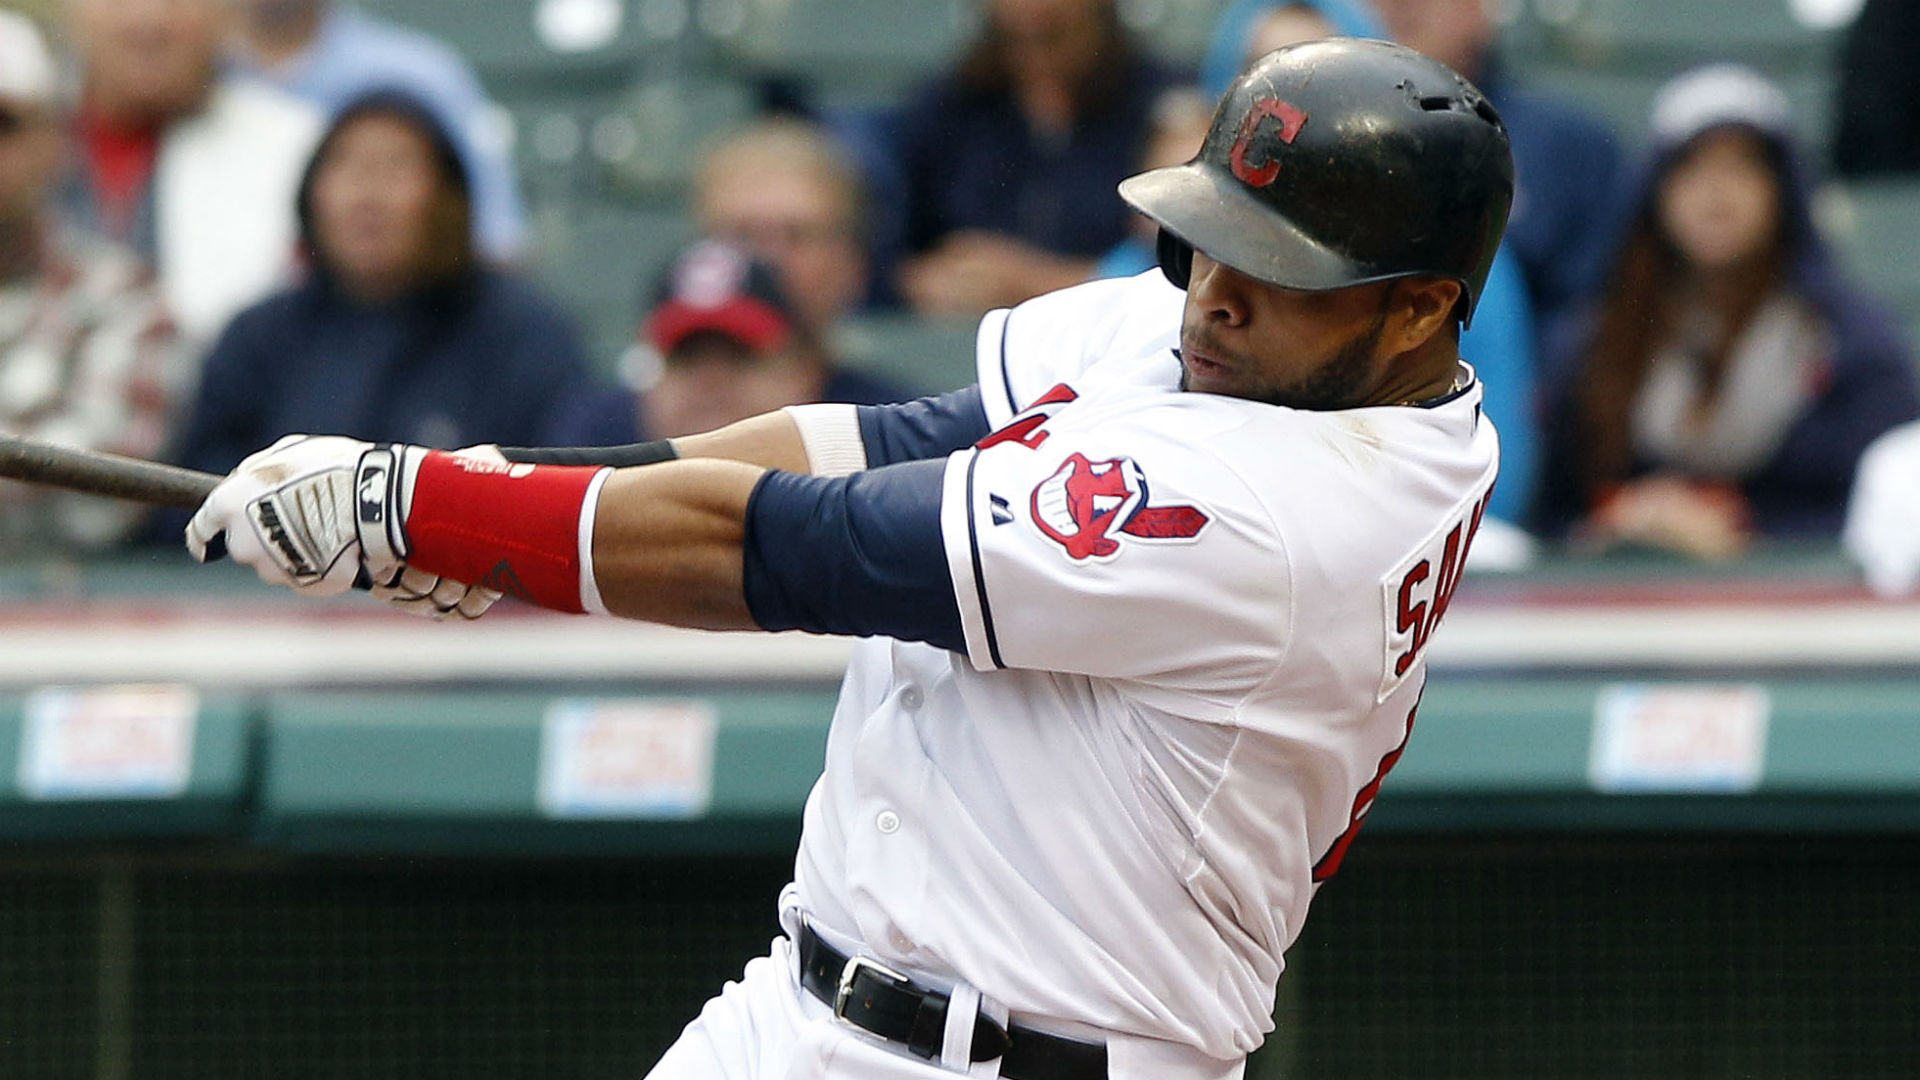 Daily fantasy baseball lineup: Tuesday's buy/sell picks in DraftKings leagues